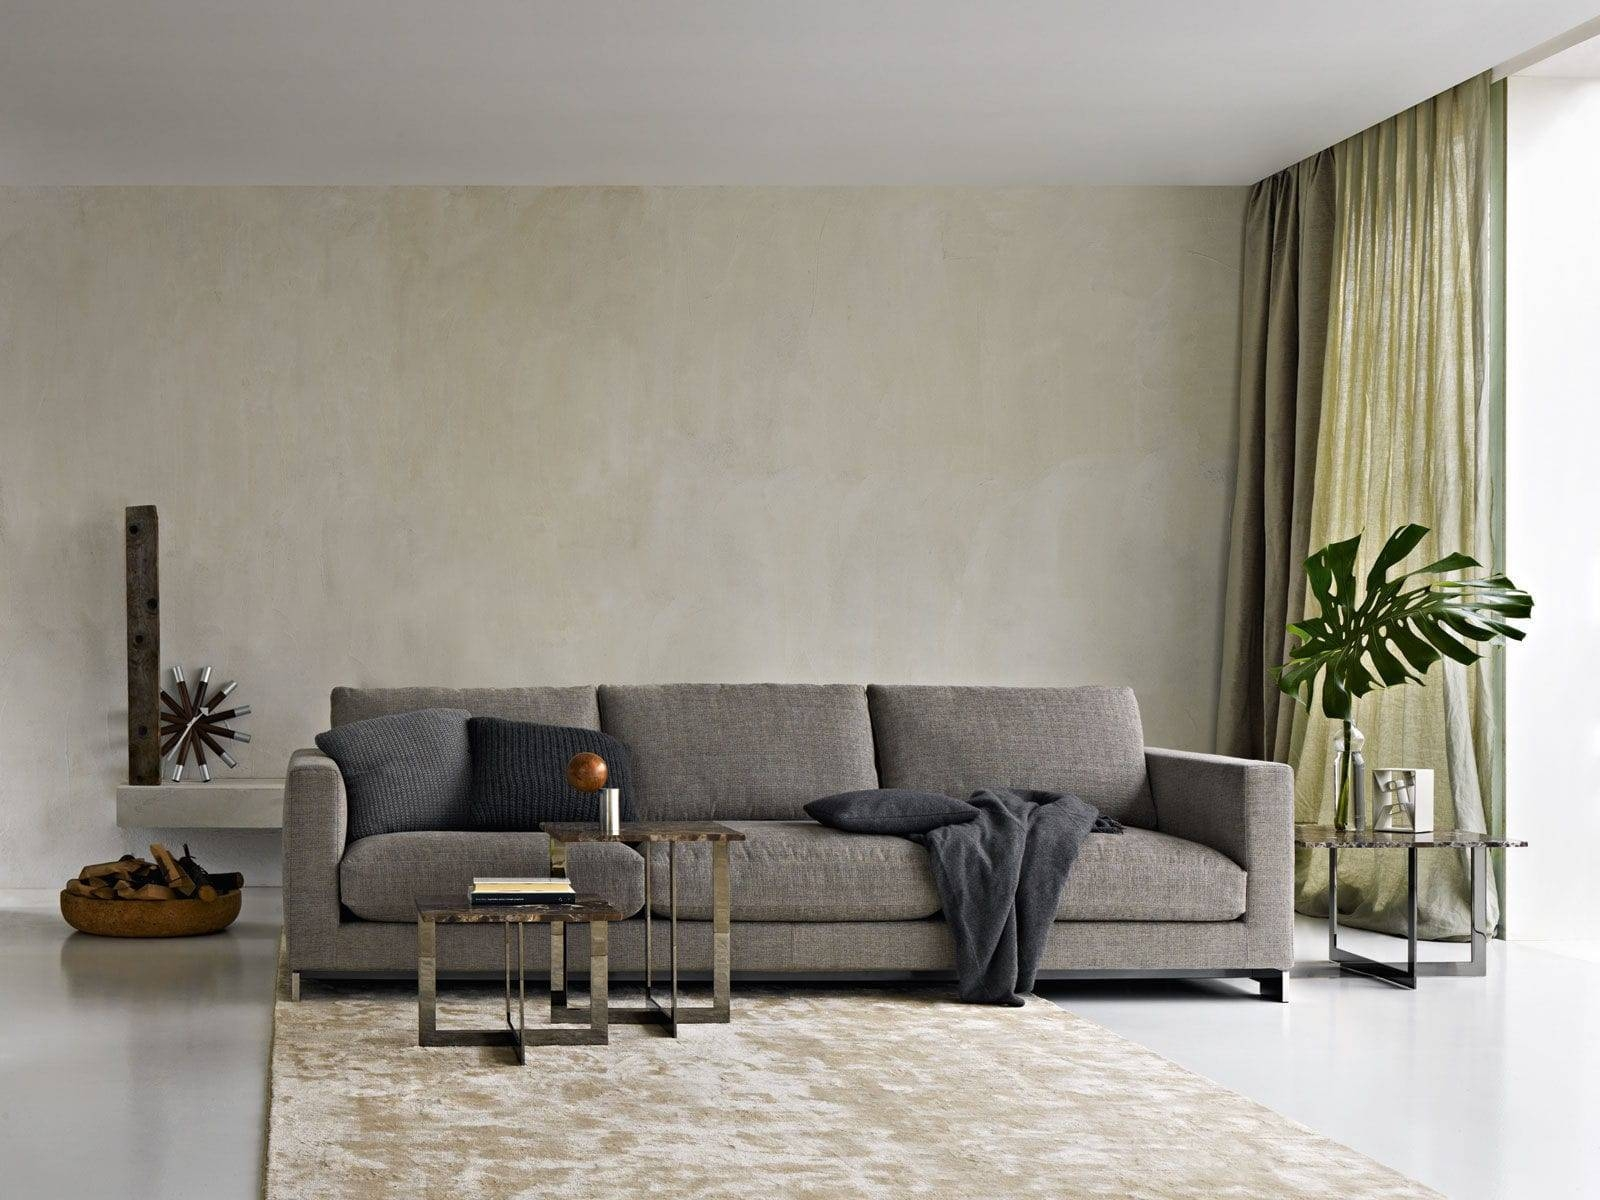 Modular Sofa / Contemporary / Fabric / Leather - Reversi - Molteni & C regarding Contemporary Fabric Sofas (Image 23 of 30)